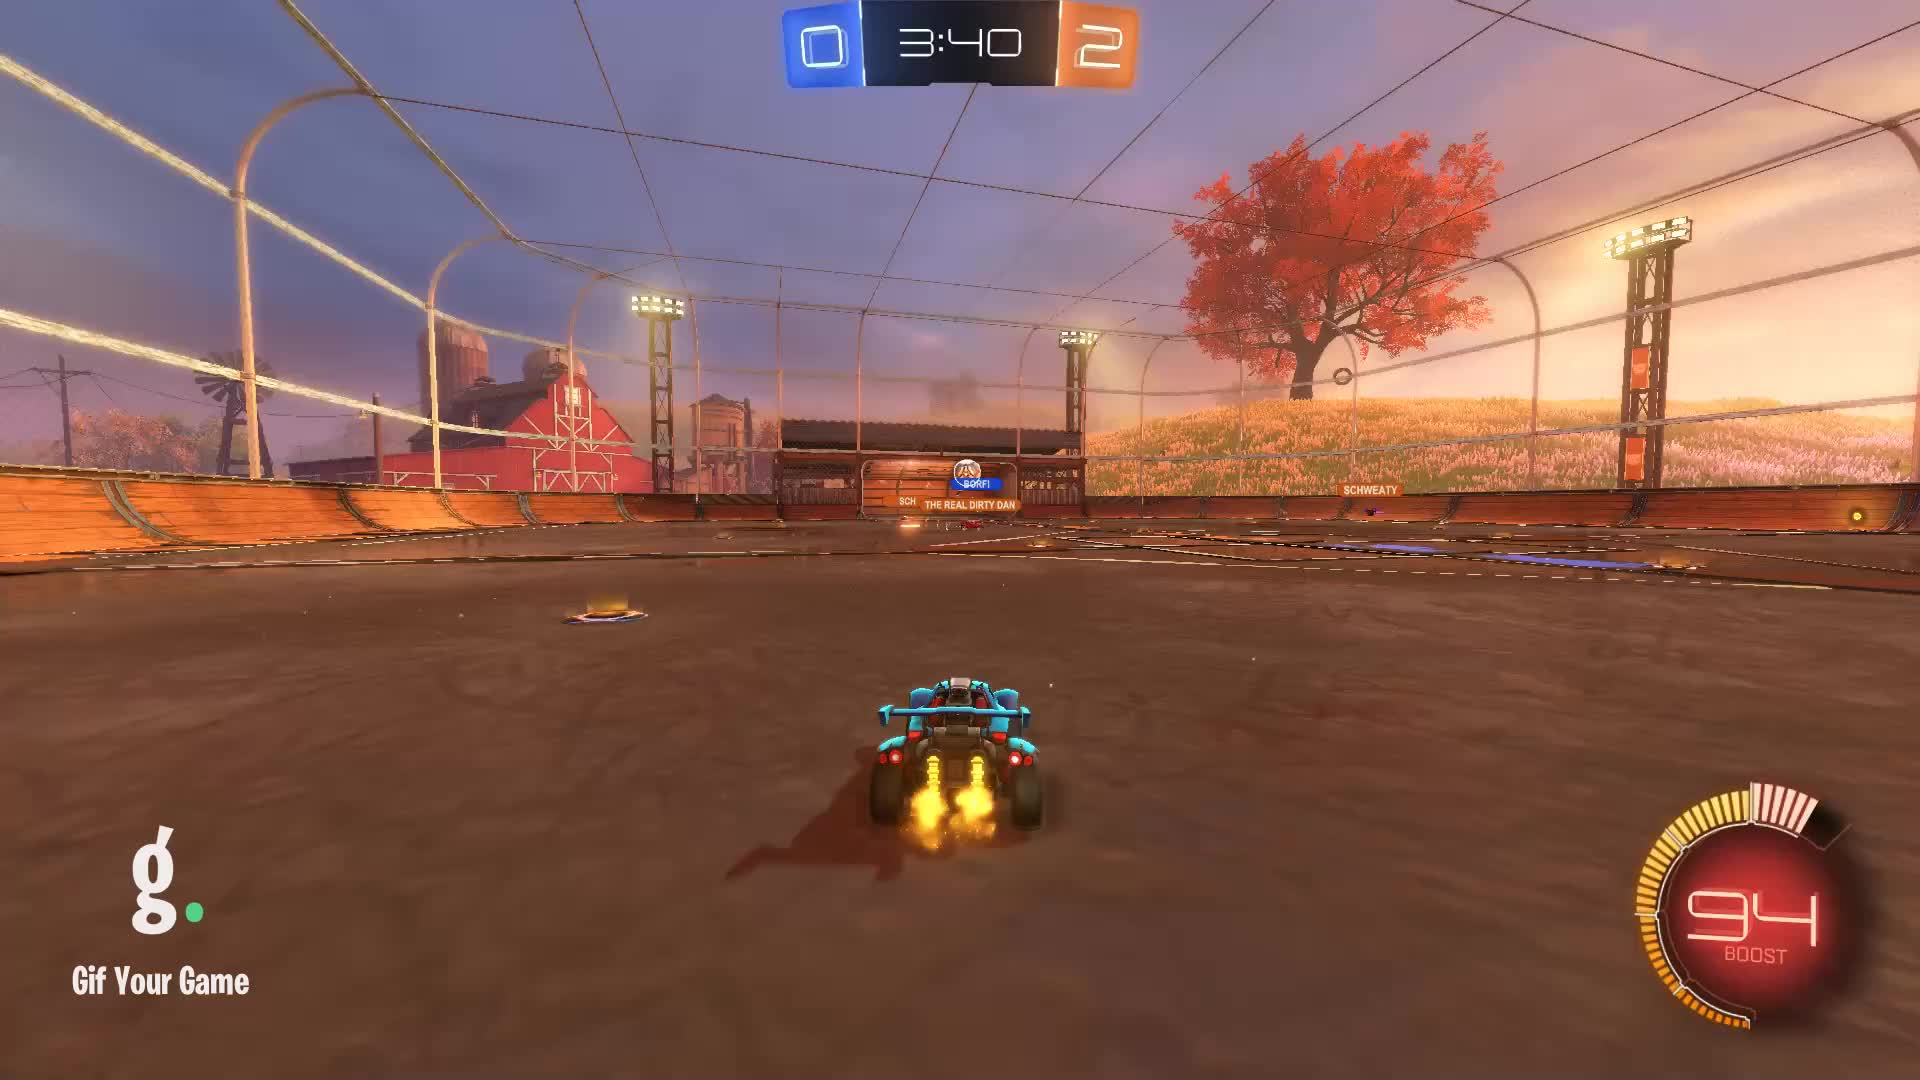 8lb Feather, Gif Your Game, GifYourGame, Goal, Rocket League, RocketLeague, Goal 3: 8lb Feather GIFs